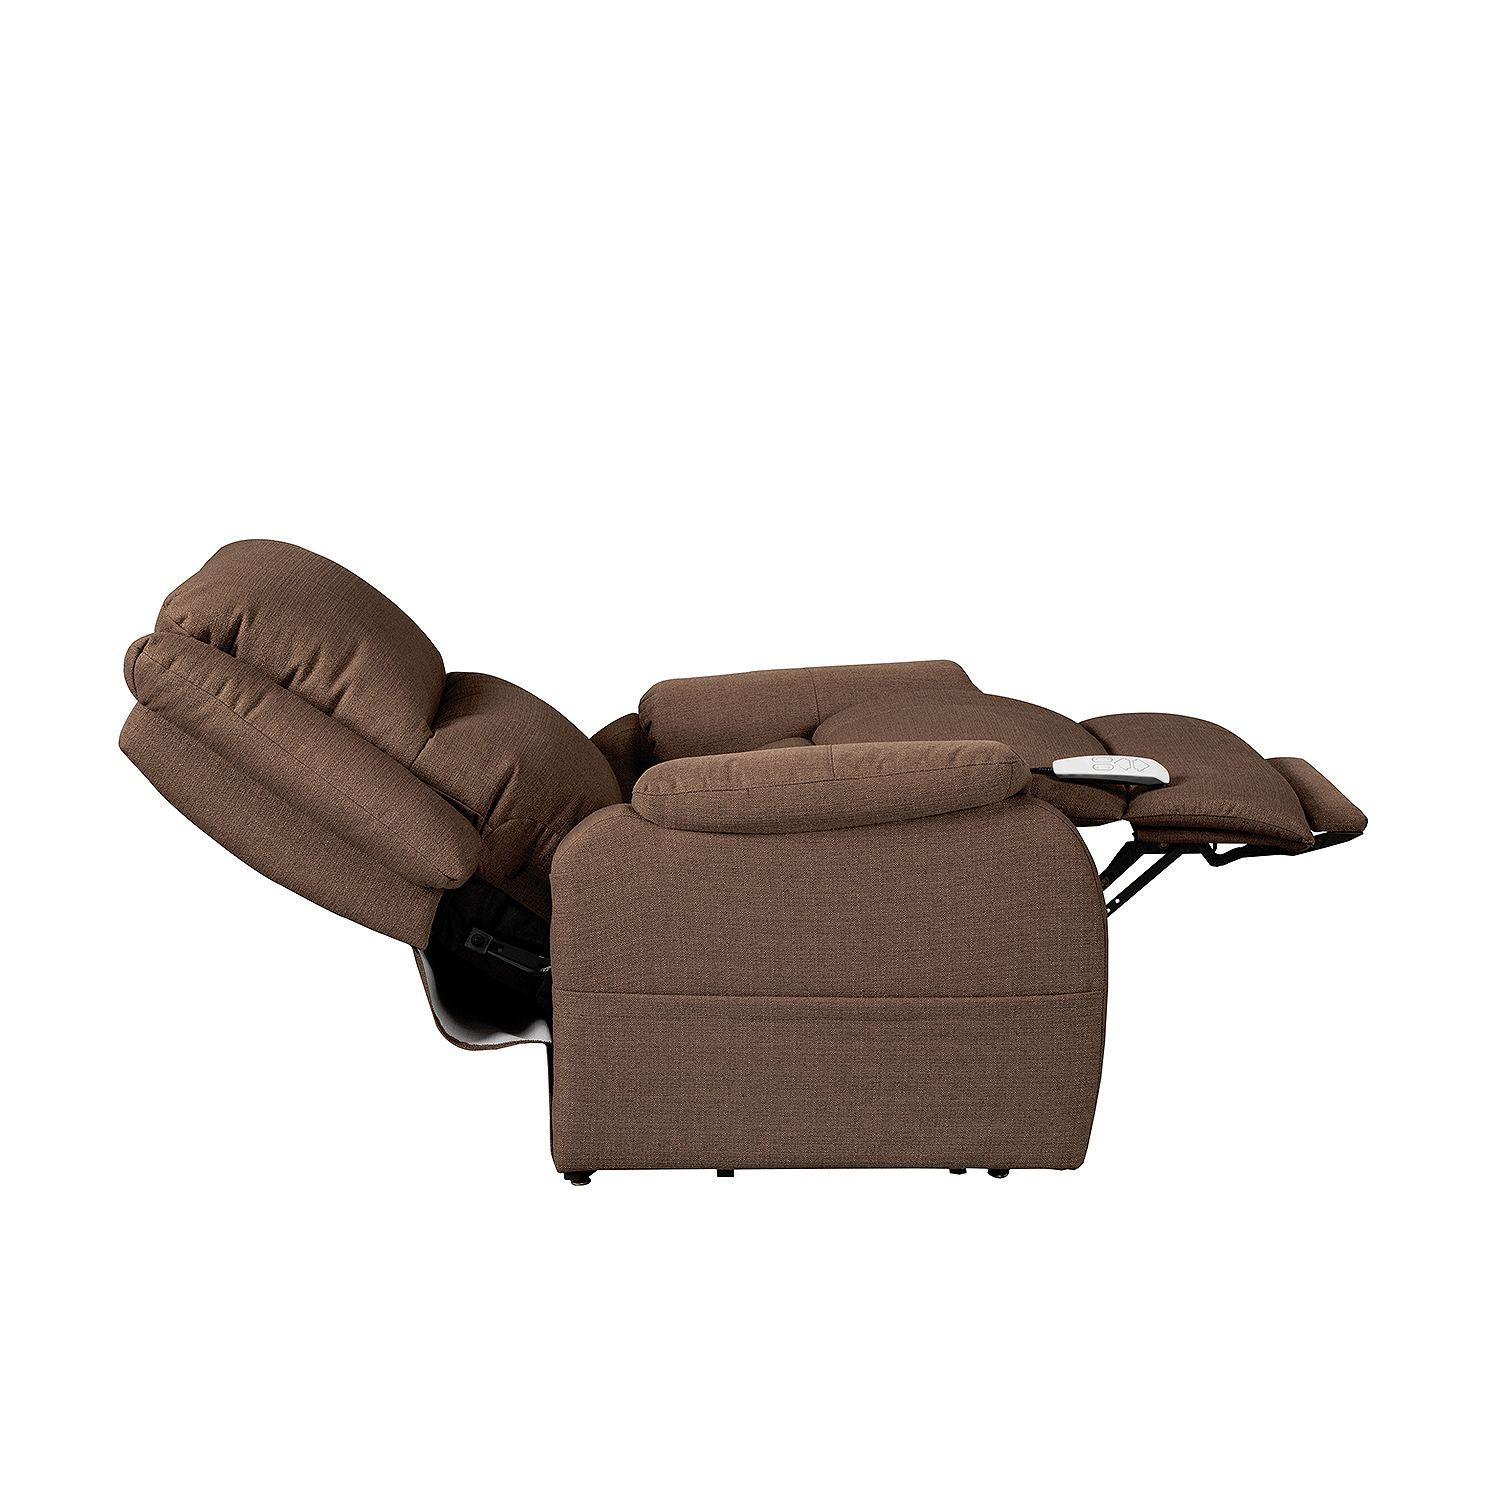 Member S Mark Power Recline Lift Chair W Adjustable Headrest Choose A Color Sam S Club Not A Wall Lift Chairs Lift Chair Recliners Power Recliner Chair